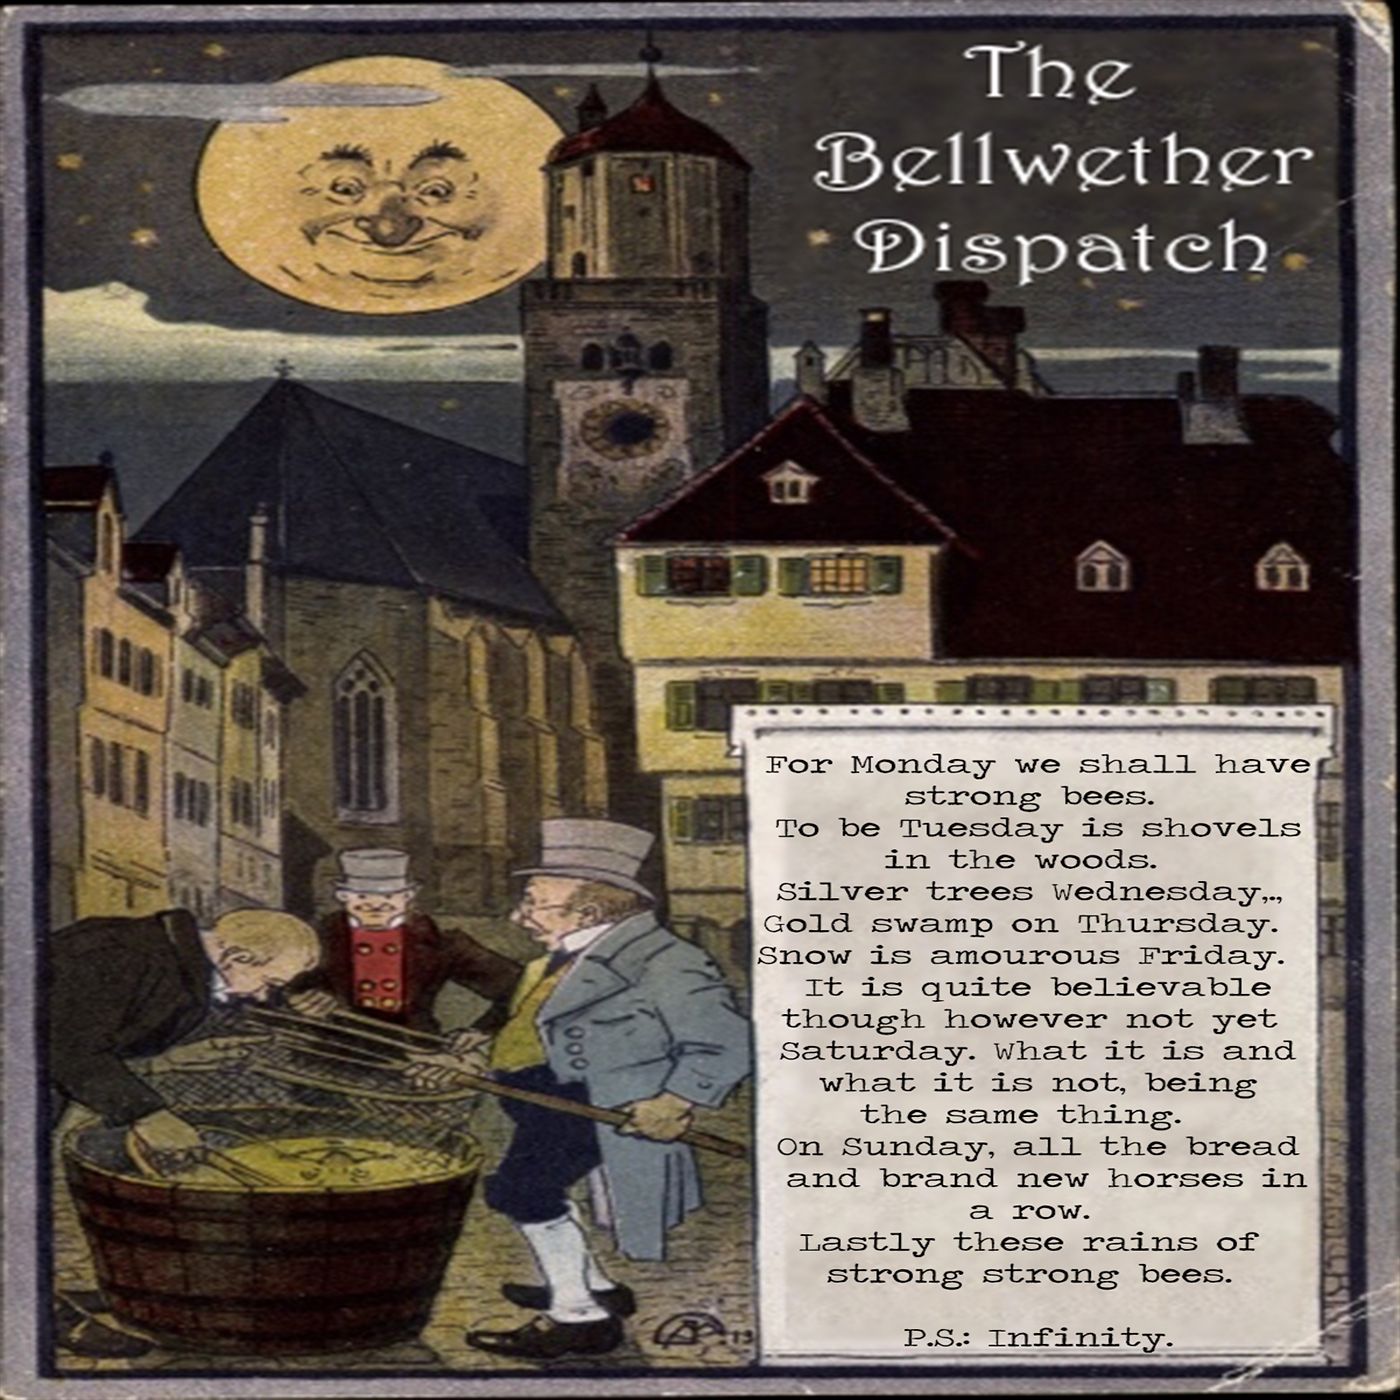 The Bellwether Dispatch 3